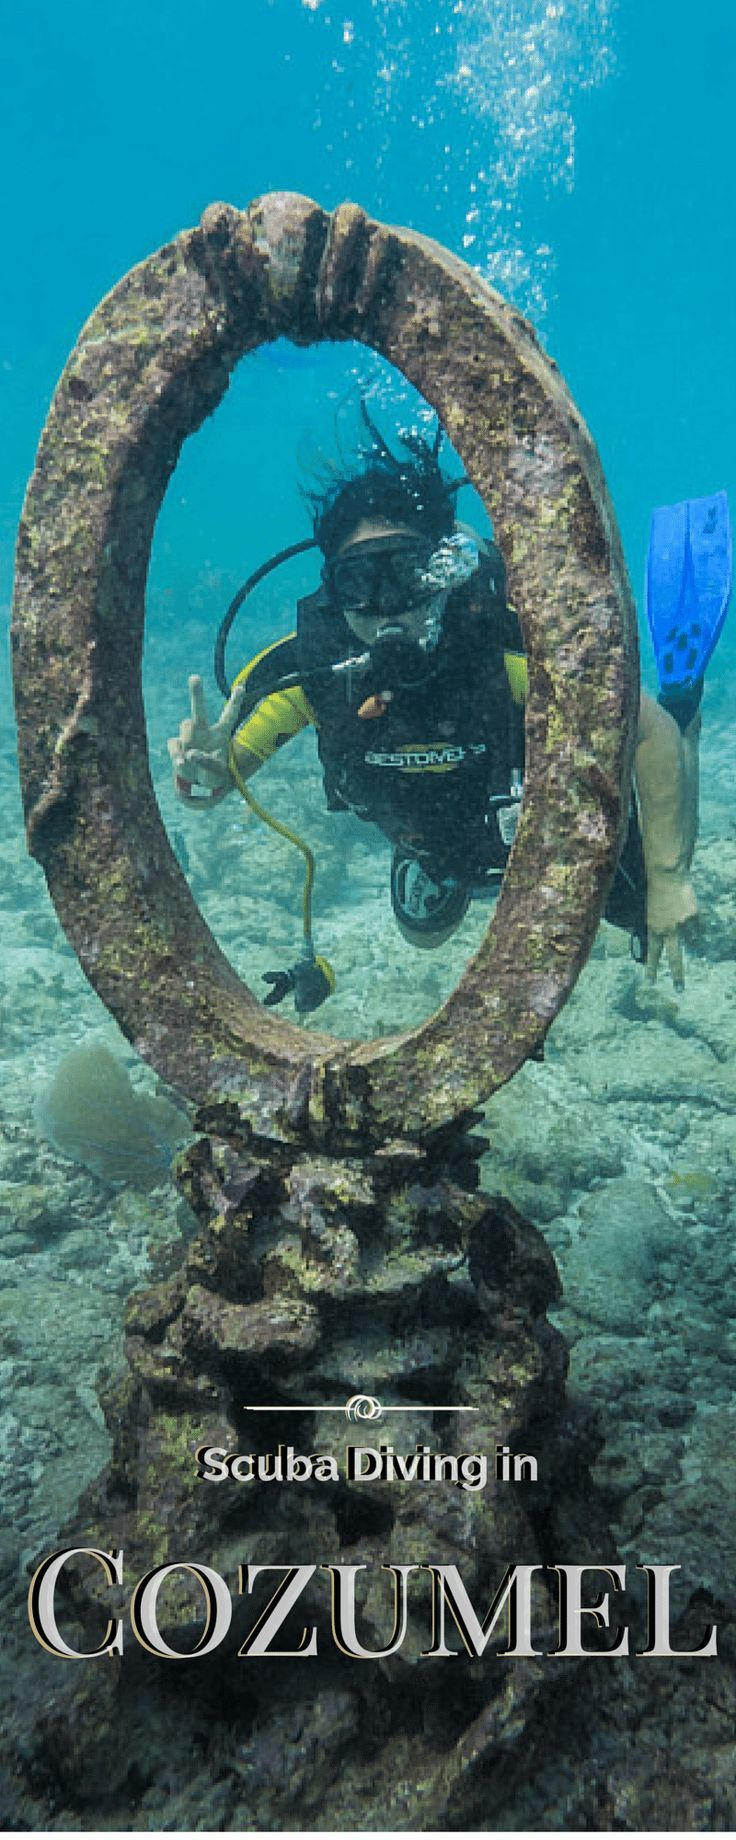 Scuba diving in Cozumel http://hereandtherewithoutacare.com/cozumel-diving/